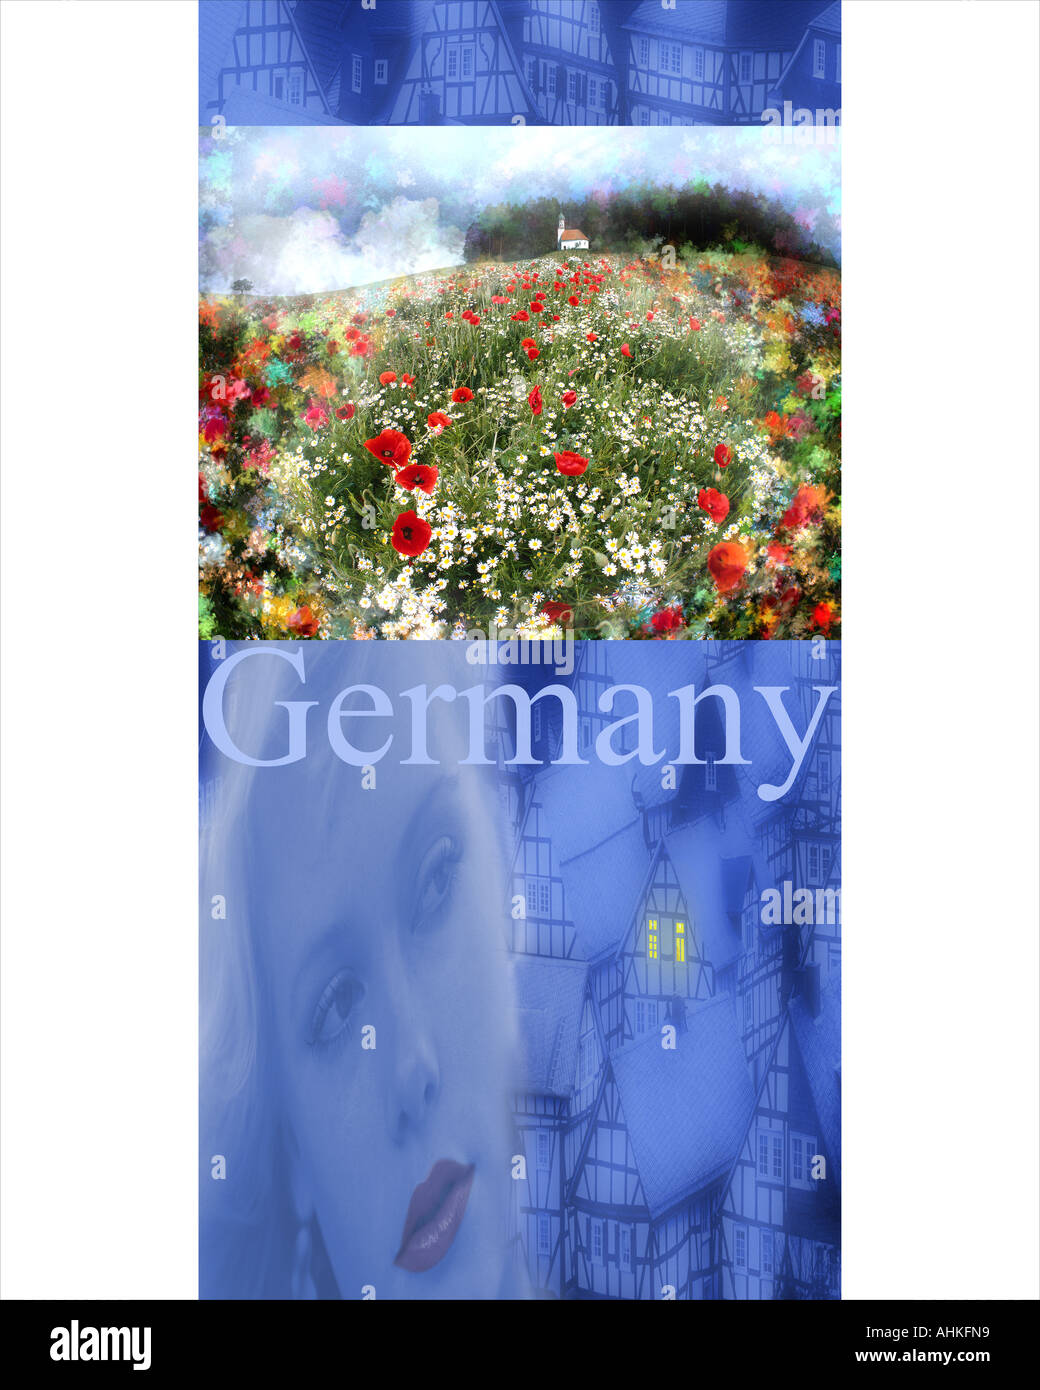 TRAVEL CONCEPT : Allemagne Photo Stock